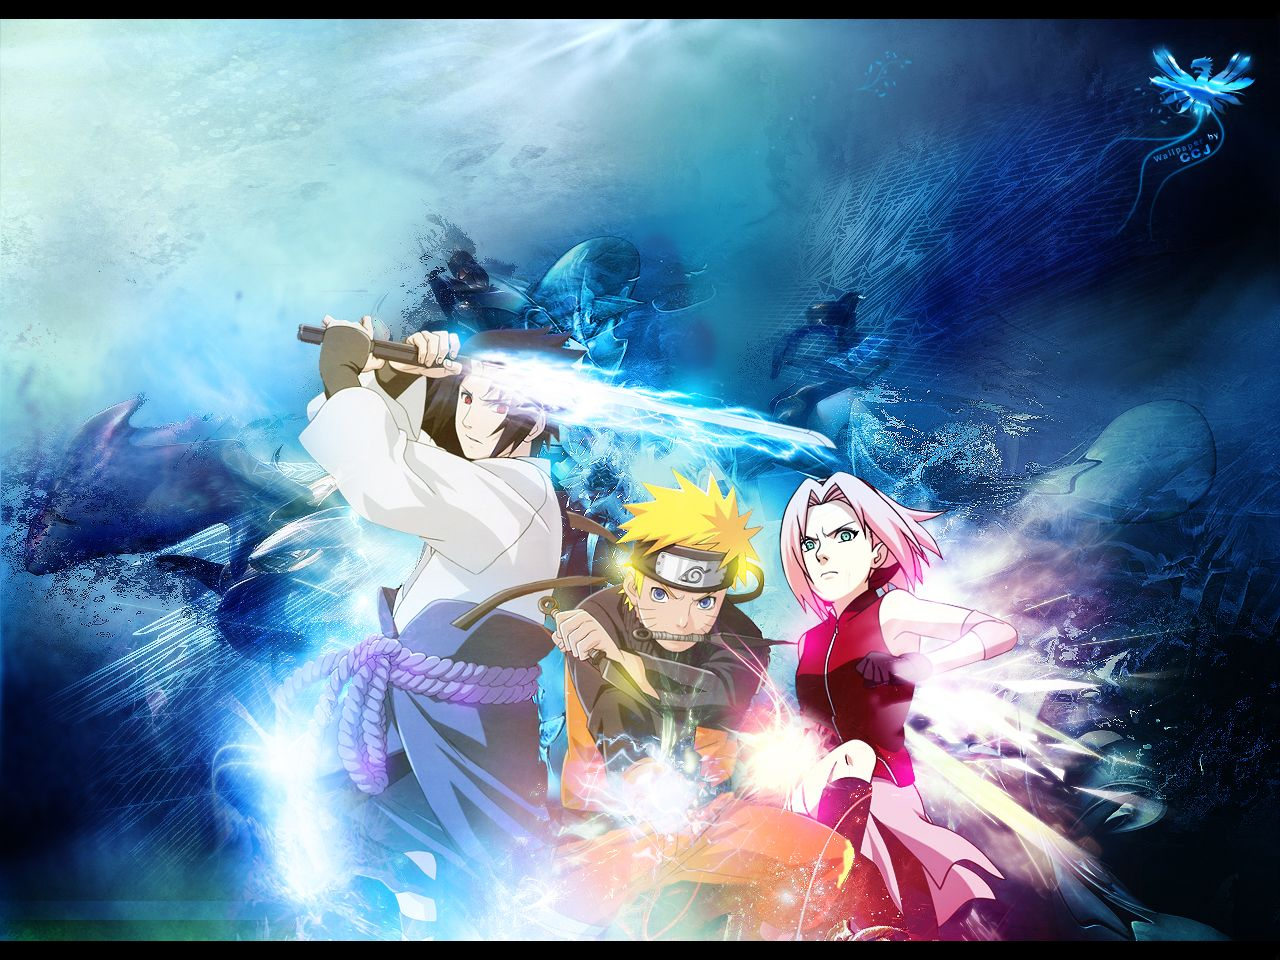 Naruto Shippuden Best naruto wallpapers, Wallpaper